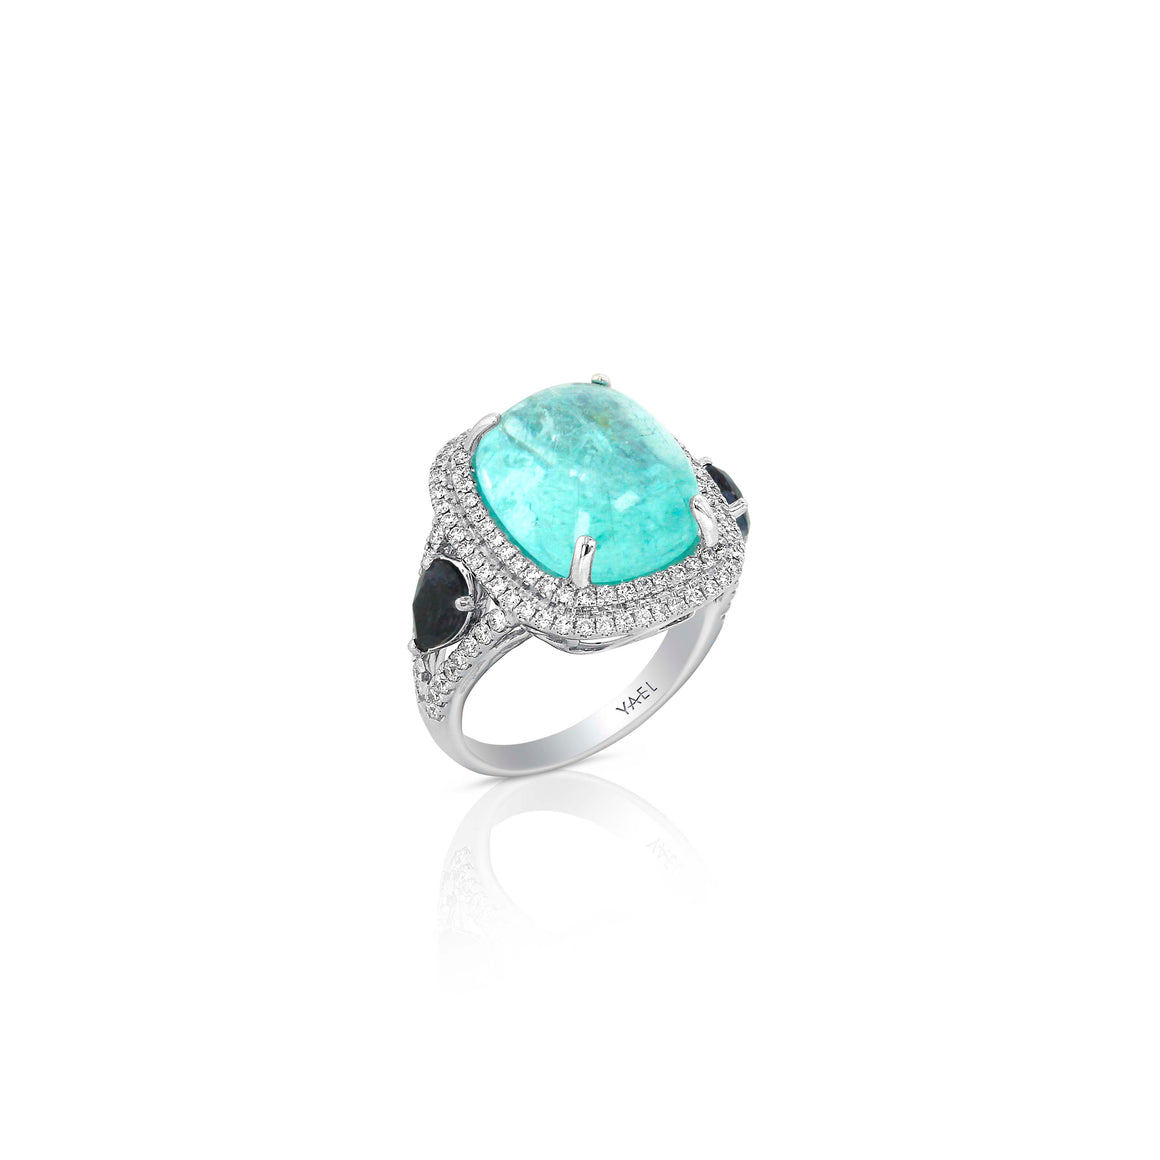 Paraiba Tourmaline, Color Change Garnet and Diamond Ring by Yael - Talisman Collection Fine Jewelers